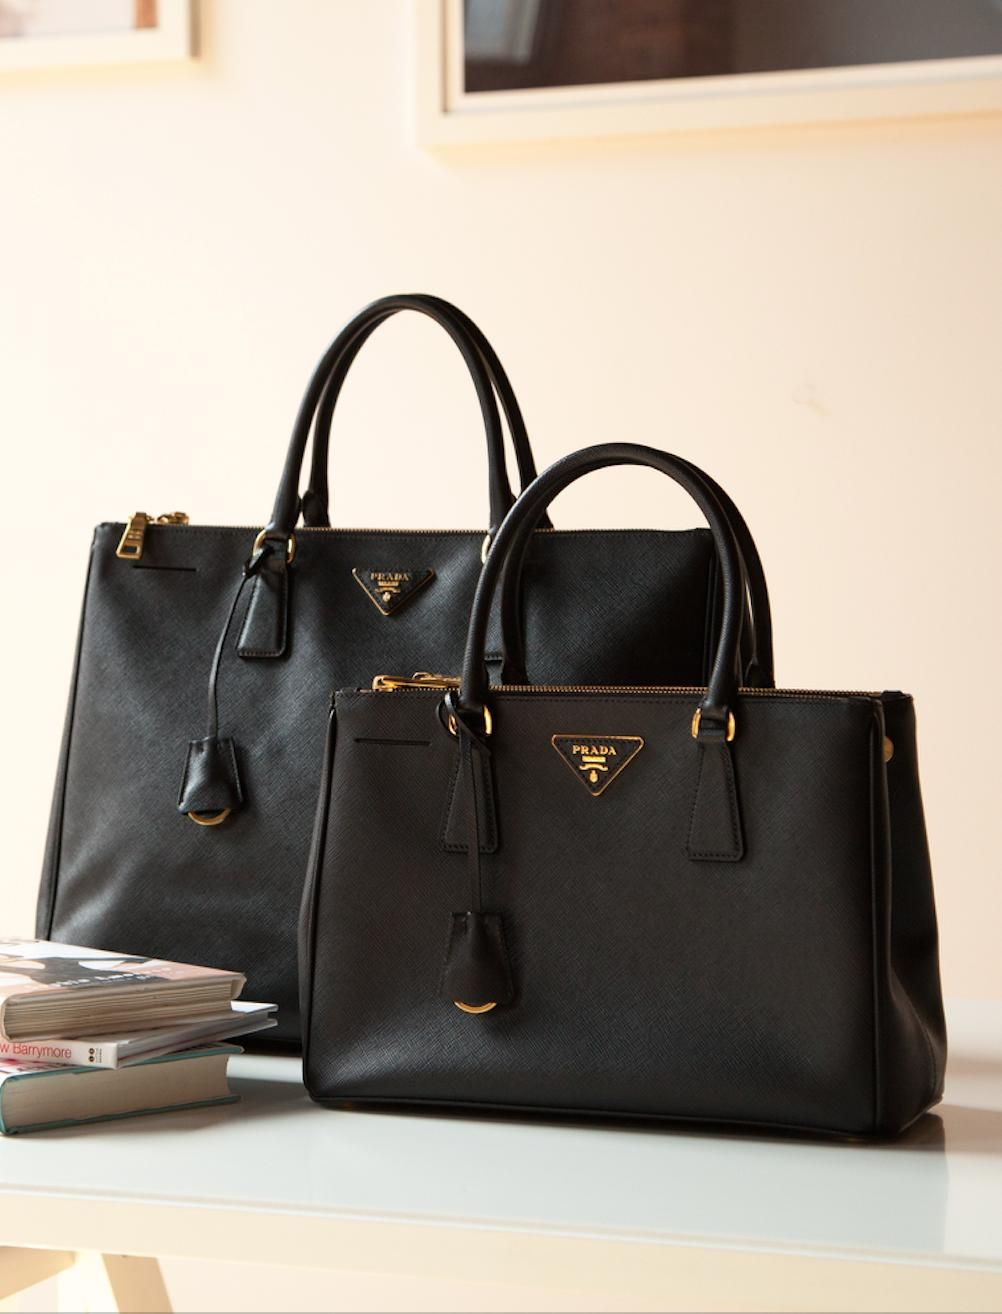 Prada Tote Bag Executive Bag